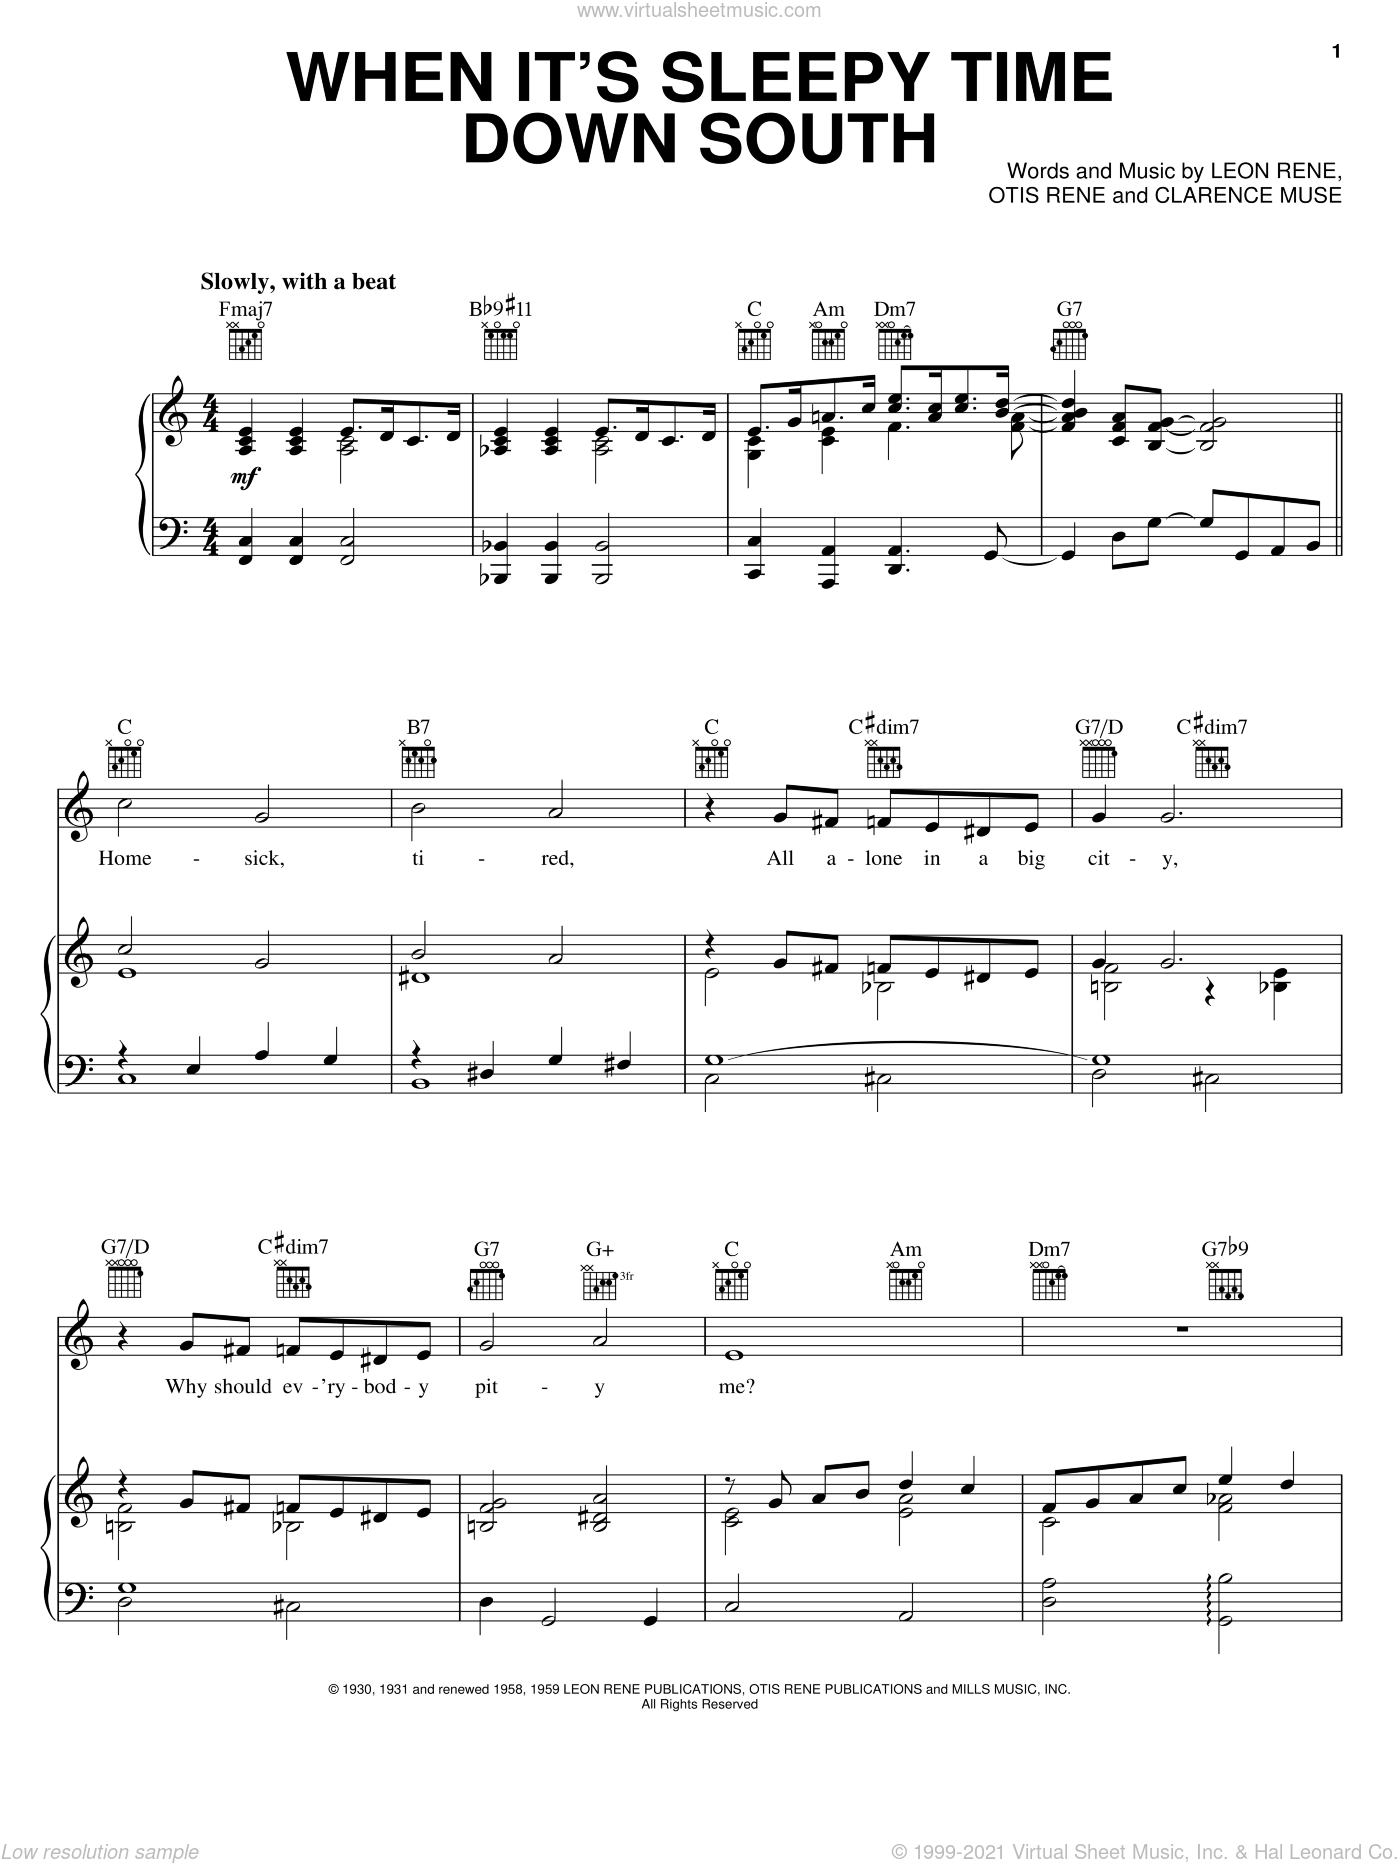 When It's Sleepy Time Down South sheet music for voice, piano or guitar by Louis Armstrong, Sidney Bechet, Clarence Muse, Leon Rene and Otis Rene, intermediate skill level